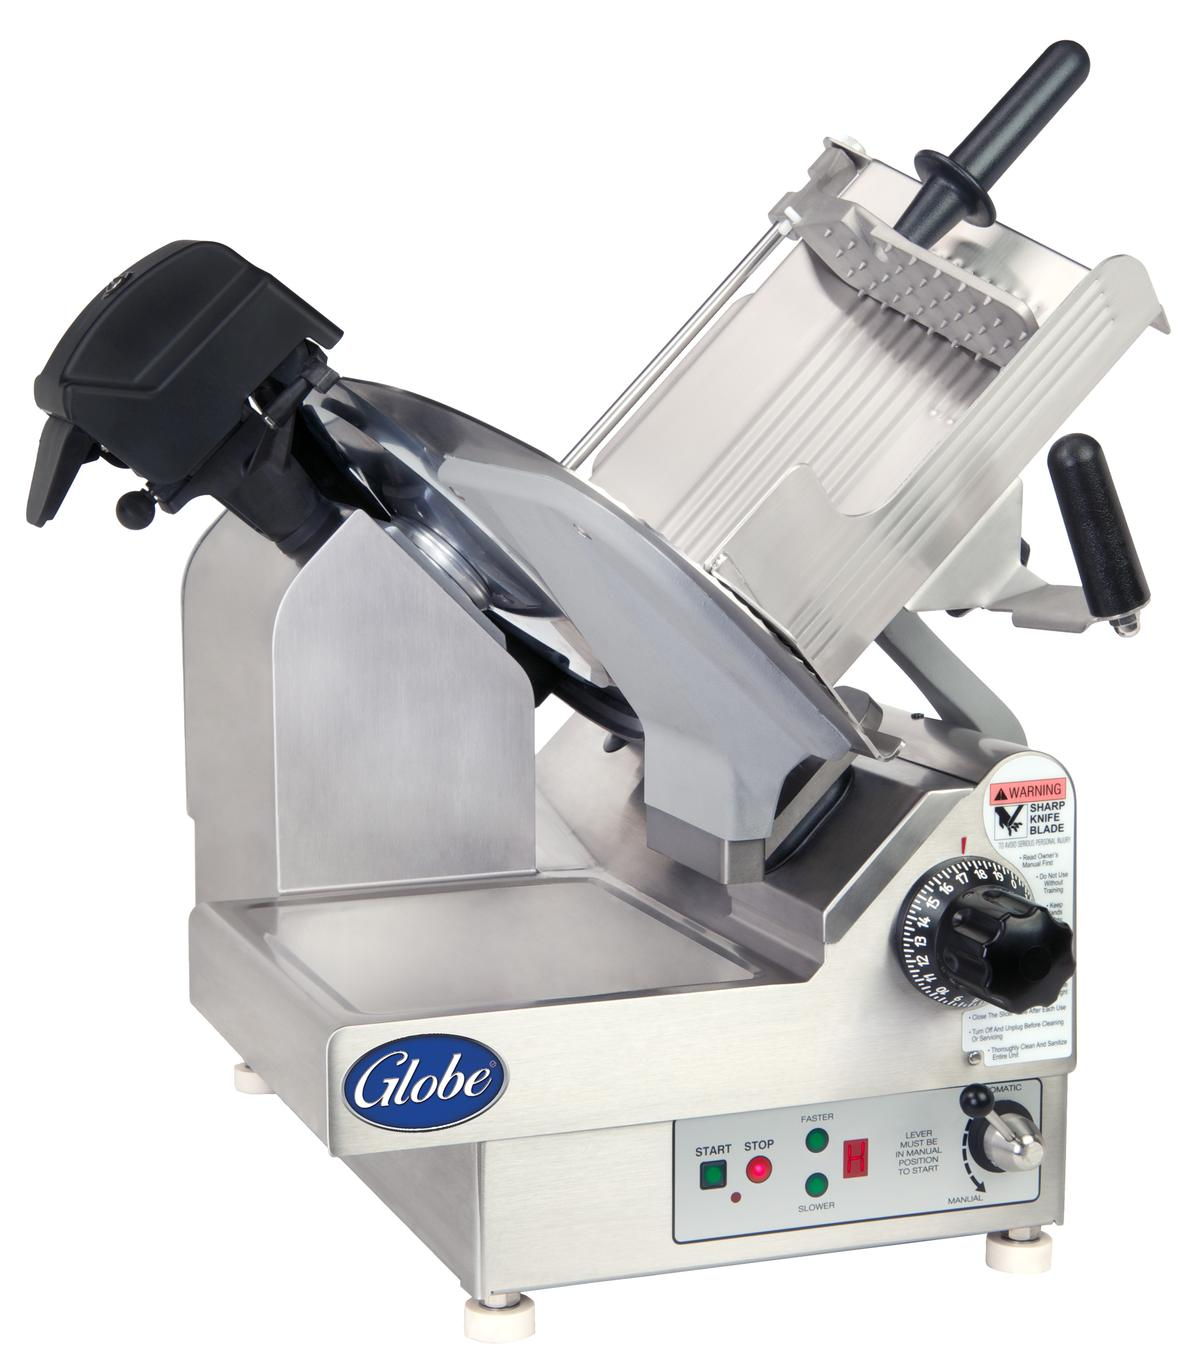 Globe 3975nf 13 Quot Globe Premium Frozen Electric Food Slicer